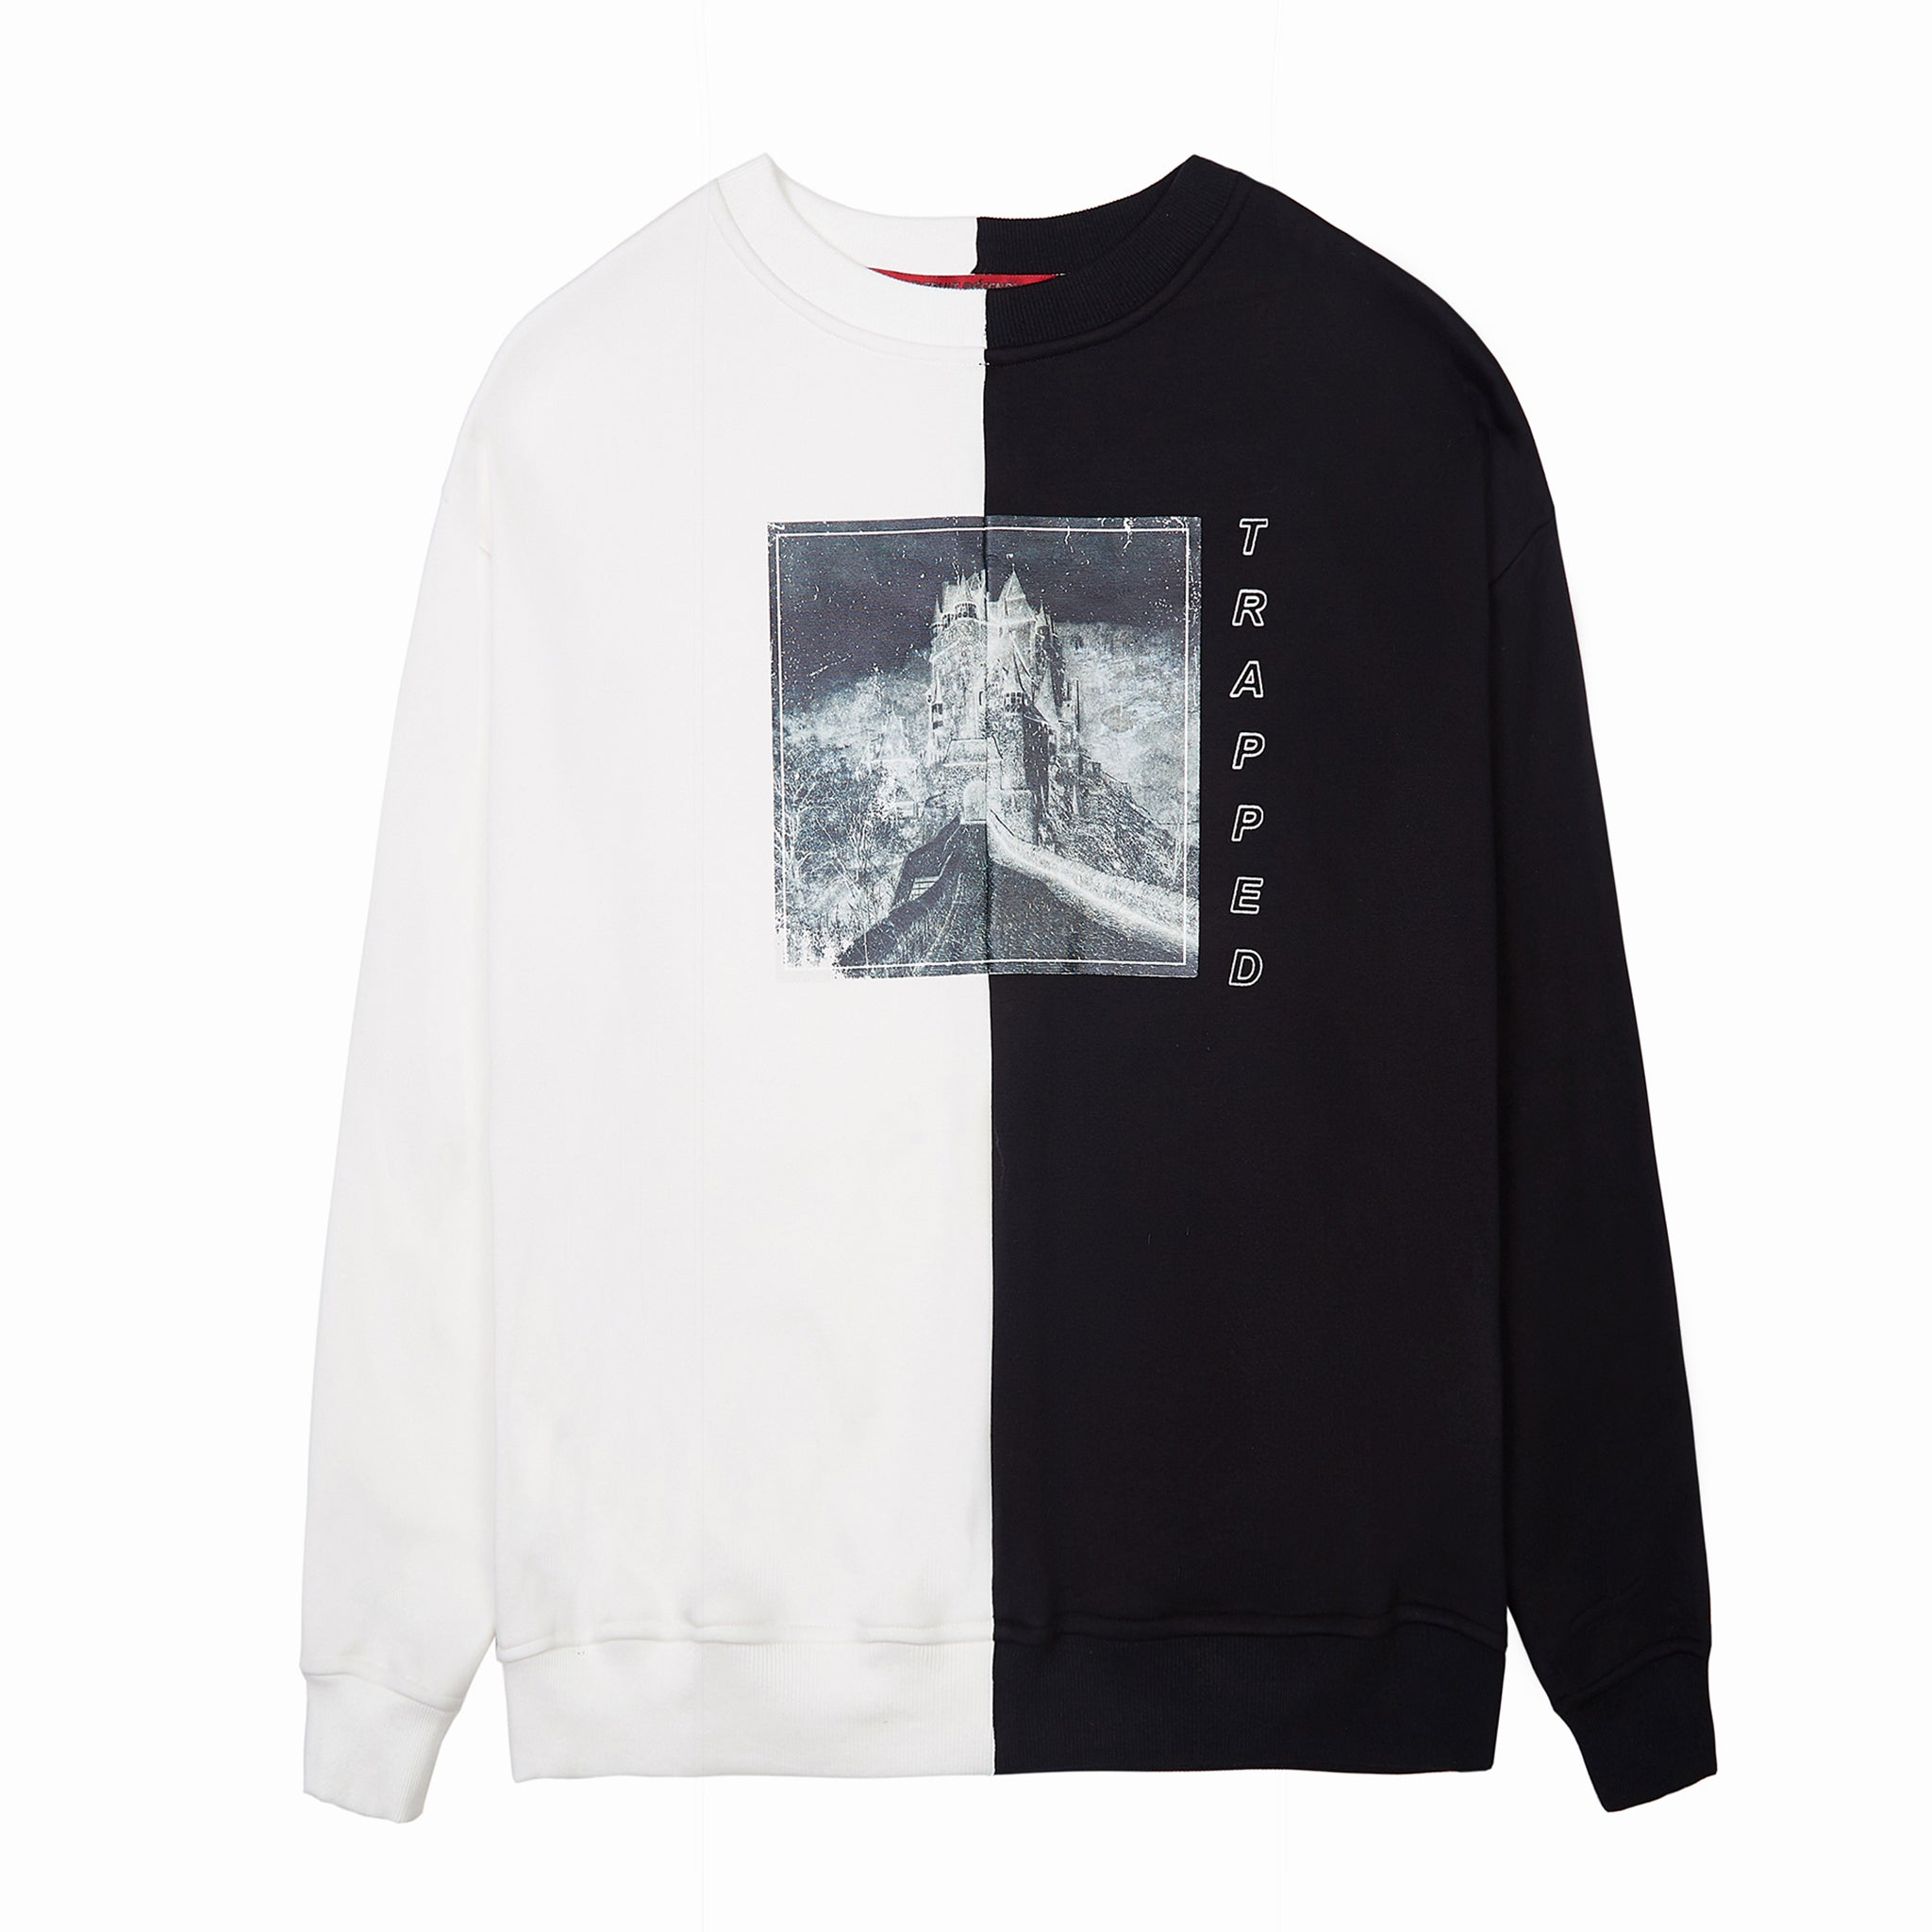 Load image into Gallery viewer, LFD Trapped Sweater - Black - White